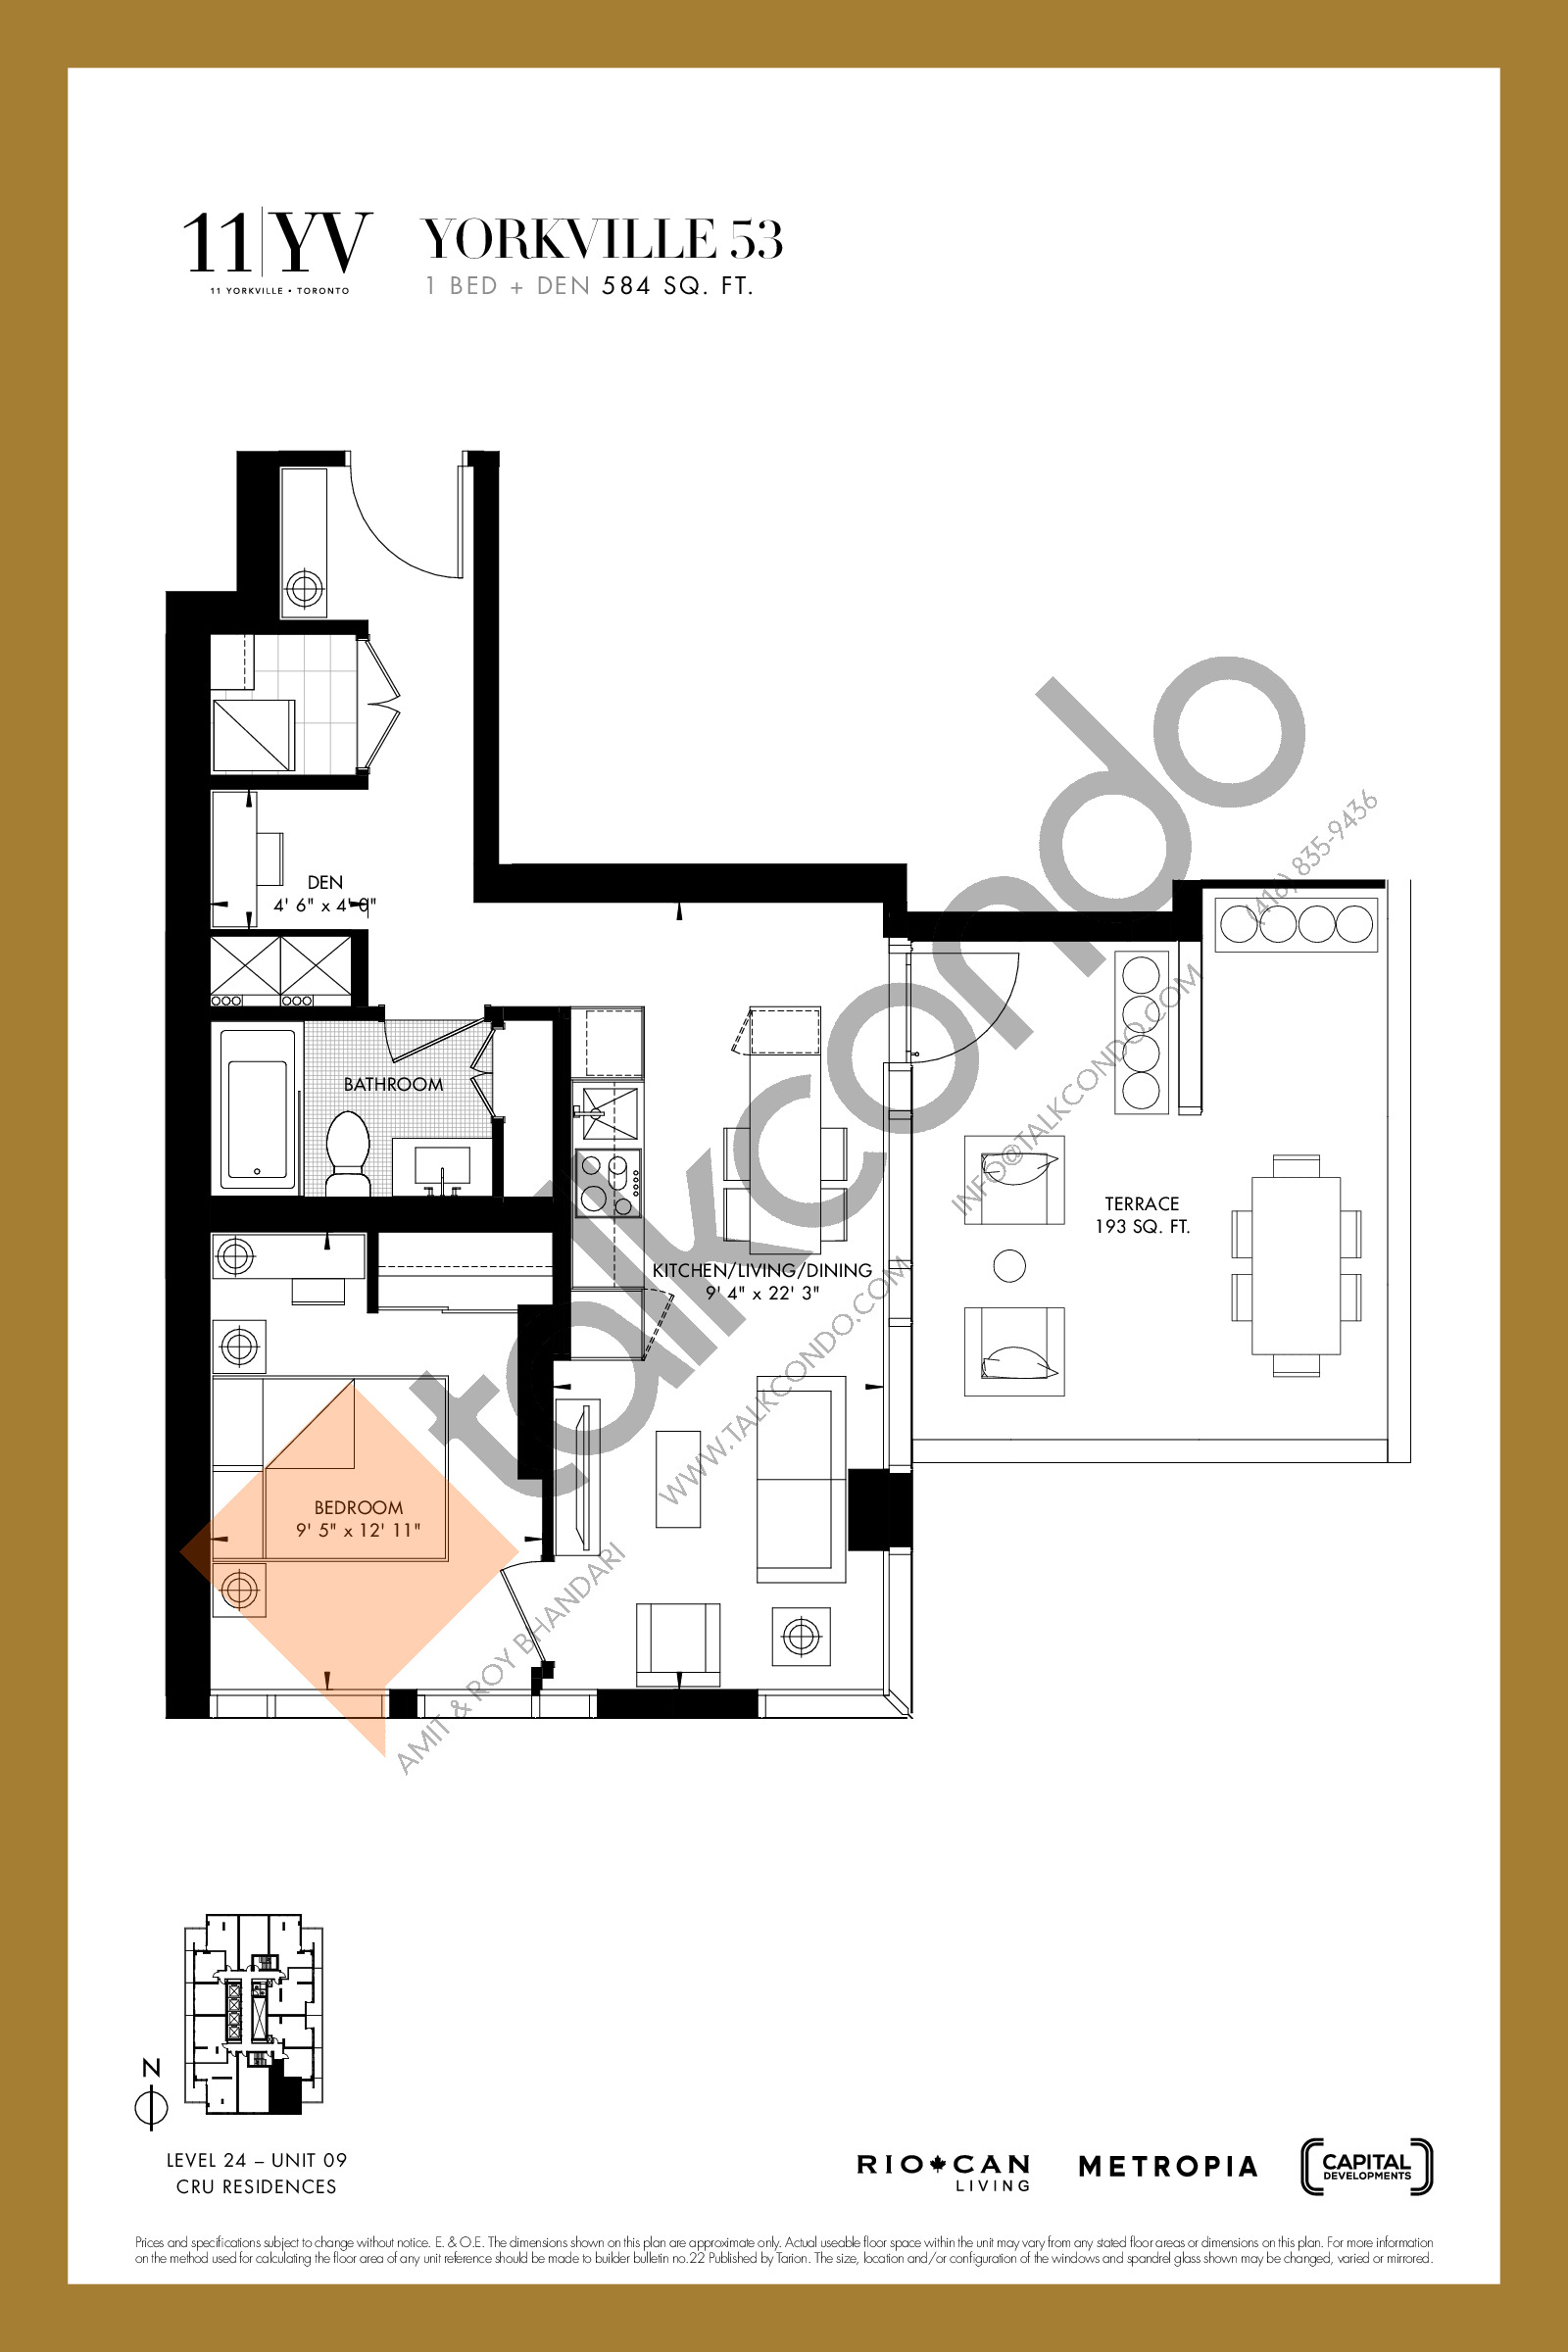 Yorkville 53 Floor Plan at 11YV Condos - 584 sq.ft